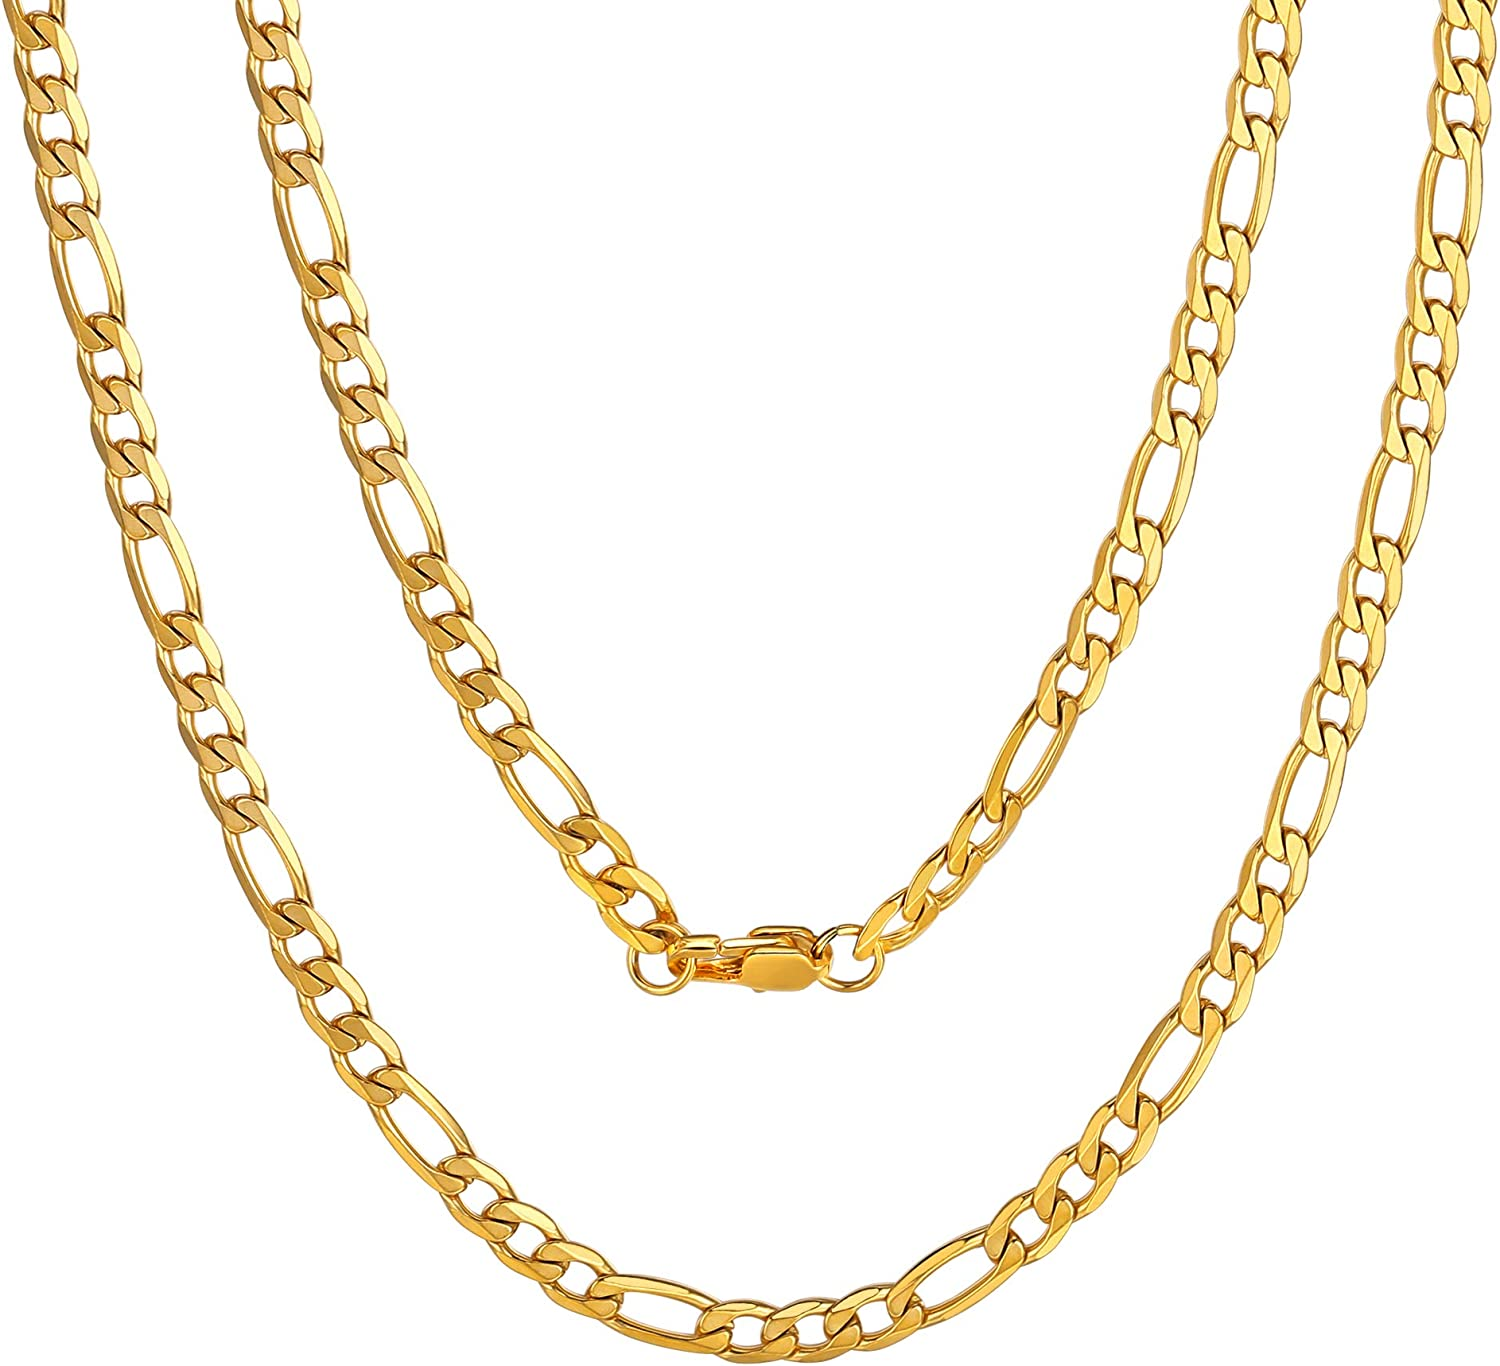 """ChainsPro Mens NK 3:1 Figaro Chain Necklace-4/6/7.5/9/13MM Width, 18K Gold Plated/316L Stainless Steel/Black, 18-30"""" (Send Gift Box)"""